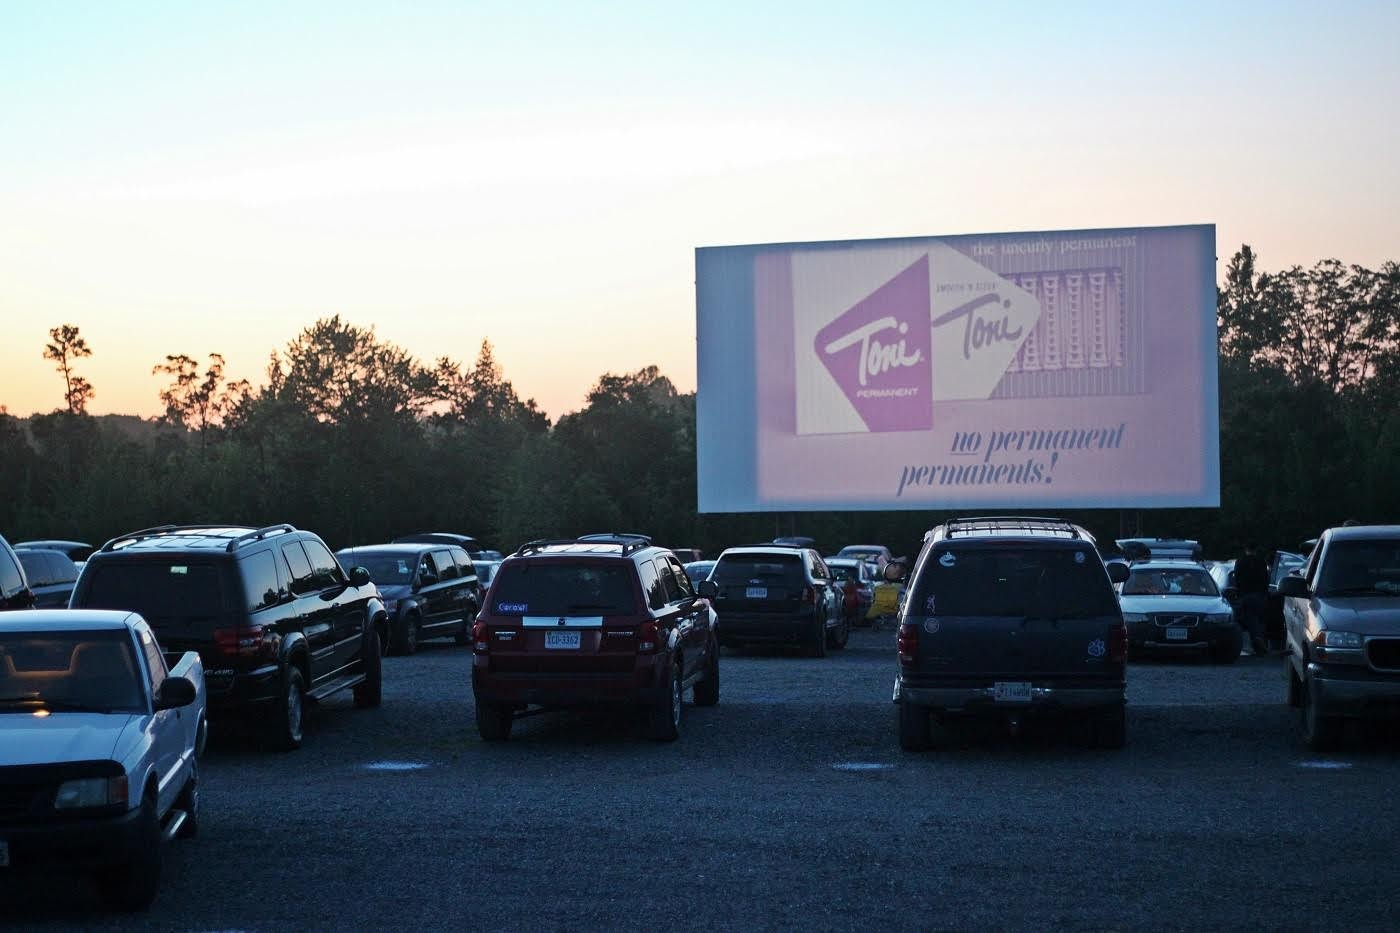 The Goochland Drive-In Theater opened in 2009 and has plans to continue expanding over the next five years.